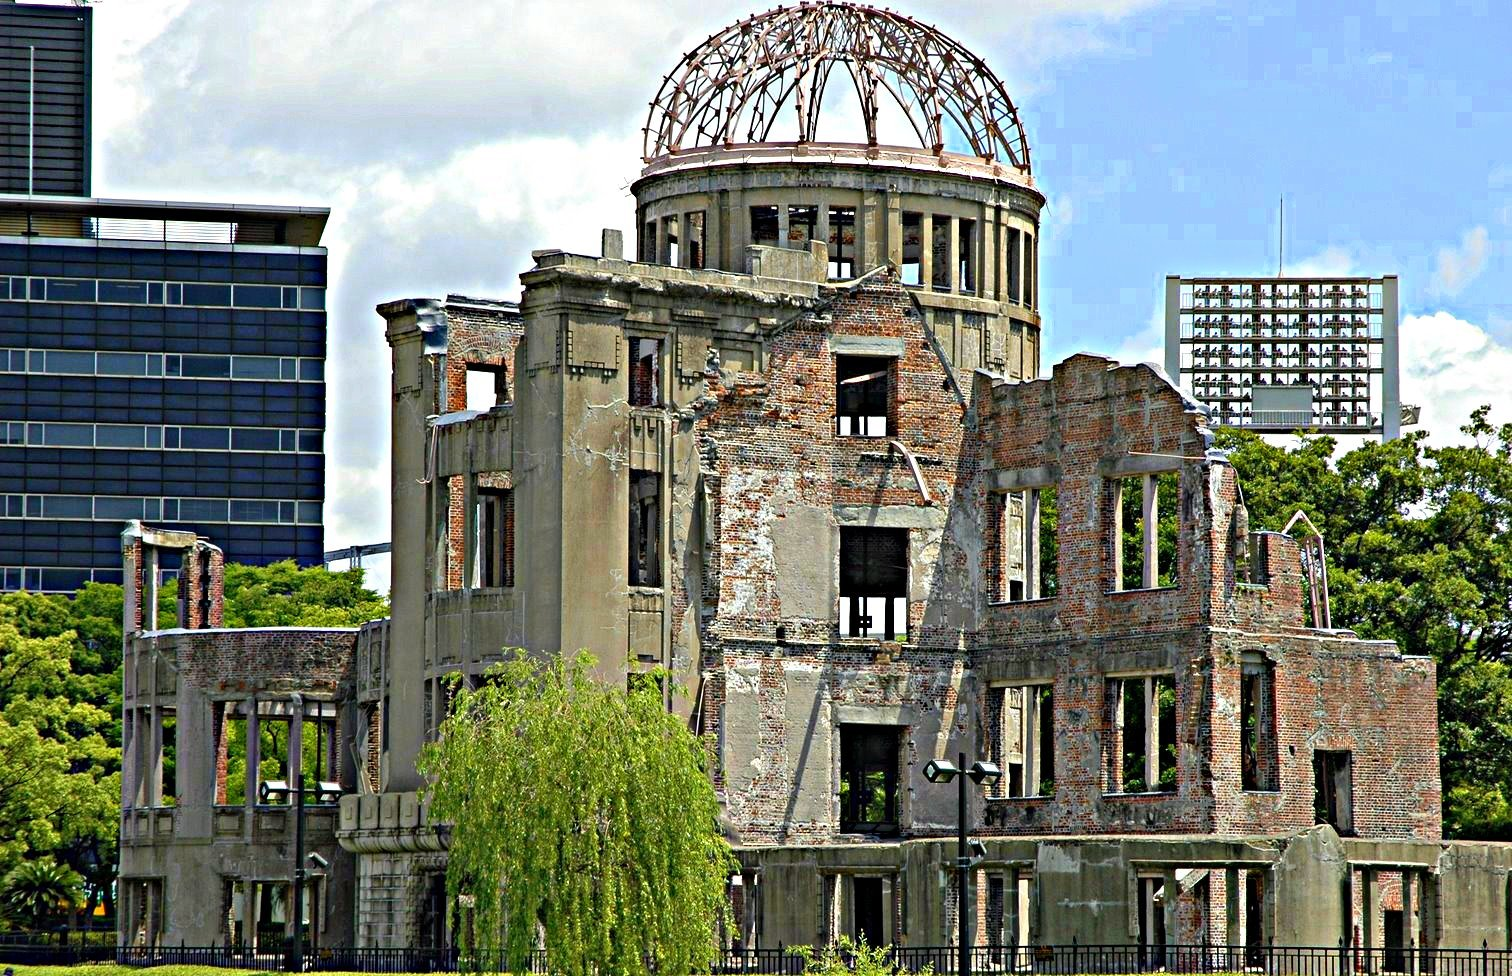 hiroshima a difficult but just decision essay Was dropping an atomic bomb on hiroshima ethical essay  on december 7th, 1941 pearl harbor, hawaii was the target of an unannounced military attack by the japanese navy - was dropping an atomic bomb on hiroshima ethicalessay introduction this resulted in the united states entry into world war ii.